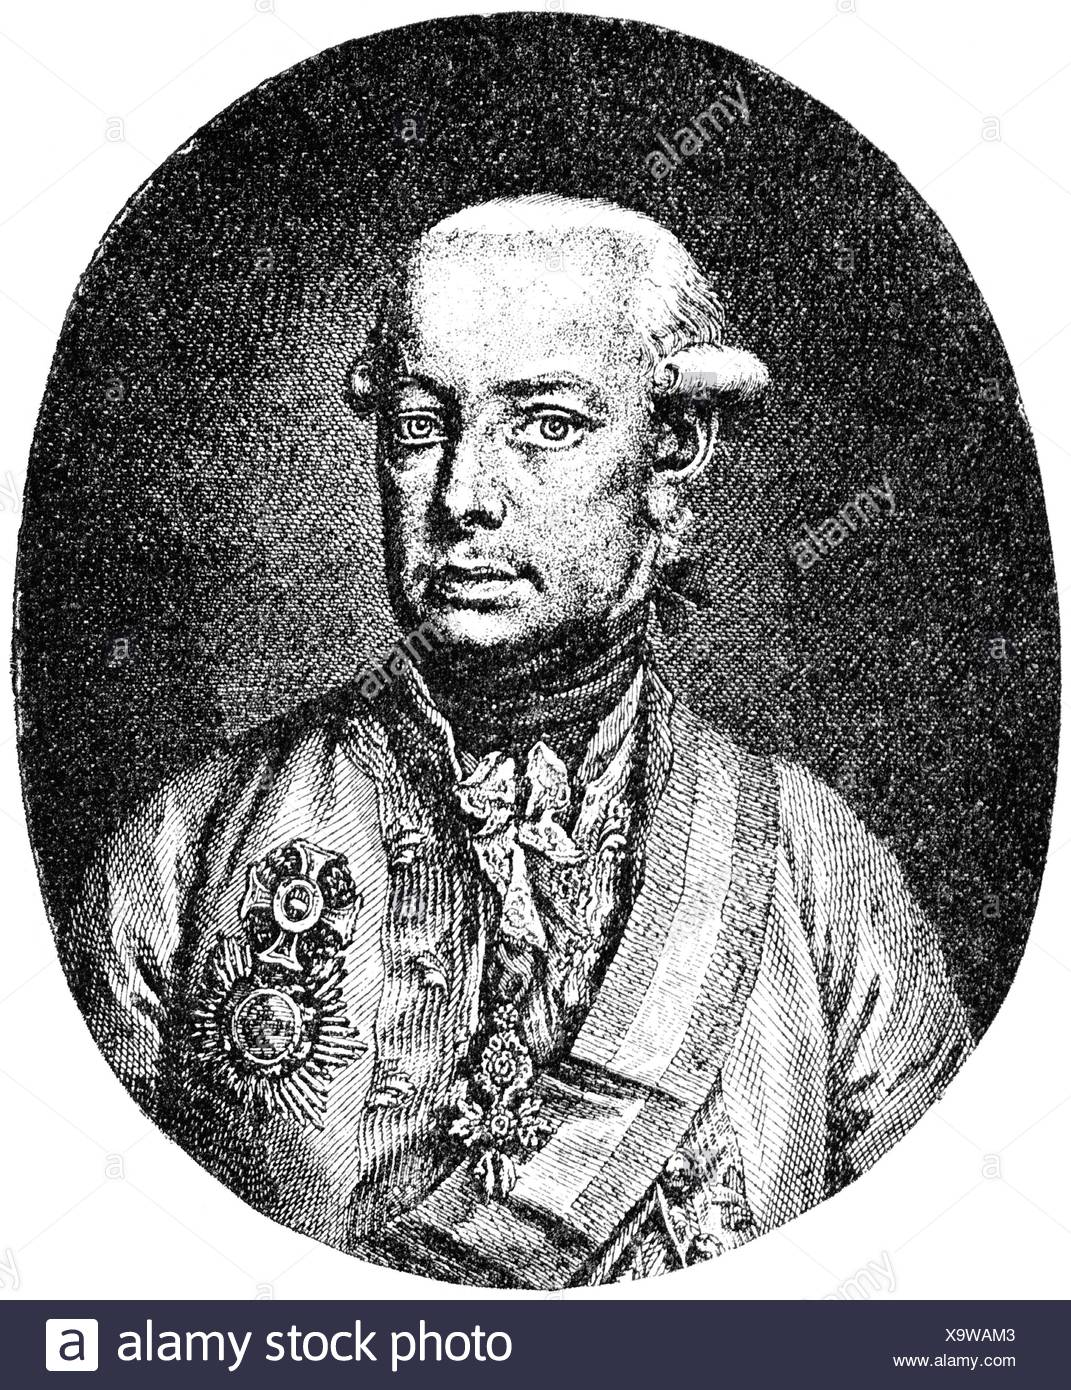 Leopold II, 5.5.1747 - 1.3.1792, Holy Roman Emperor 30.9.1790 - 1.3.1792, copper engraving by Jakob Adam, 1790, after painting Kreutzinger, Artist's Copyright has not to be cleared Stock Photo